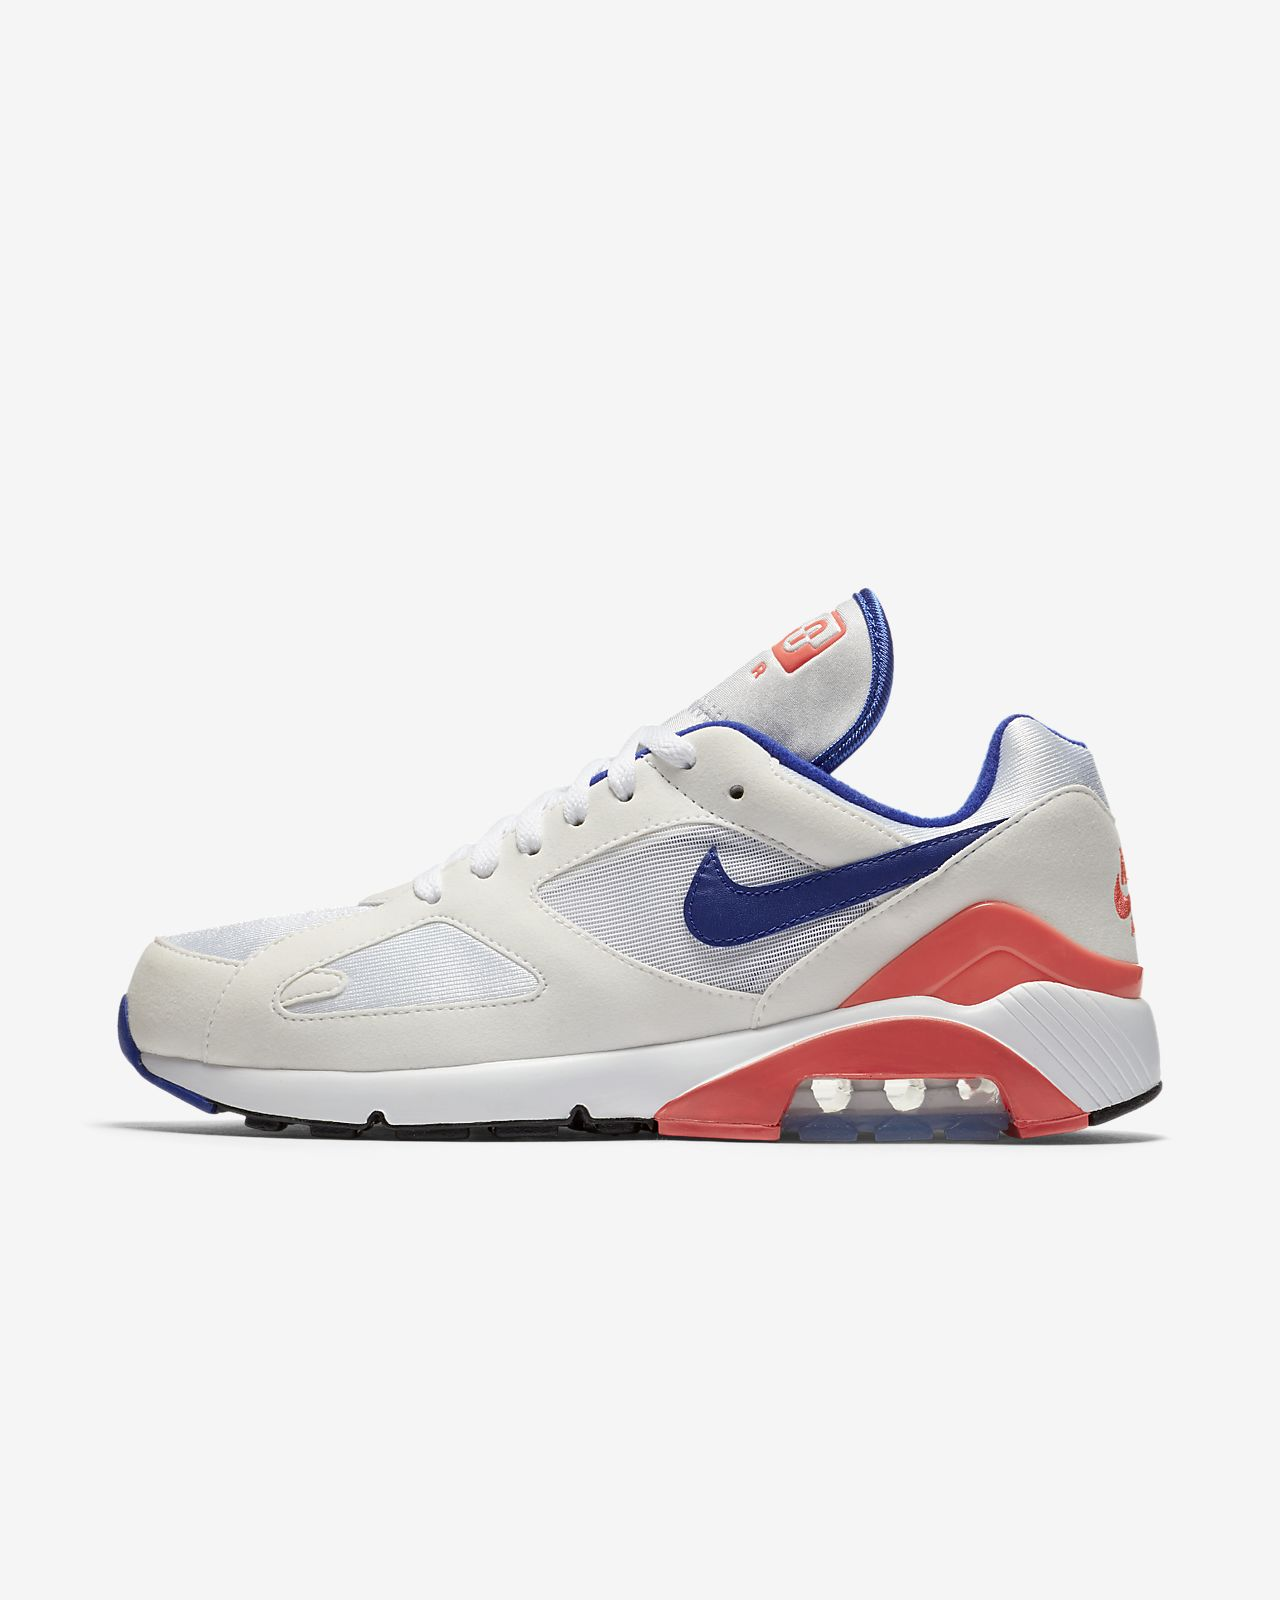 Men's Shoe. Nike Air Max 180